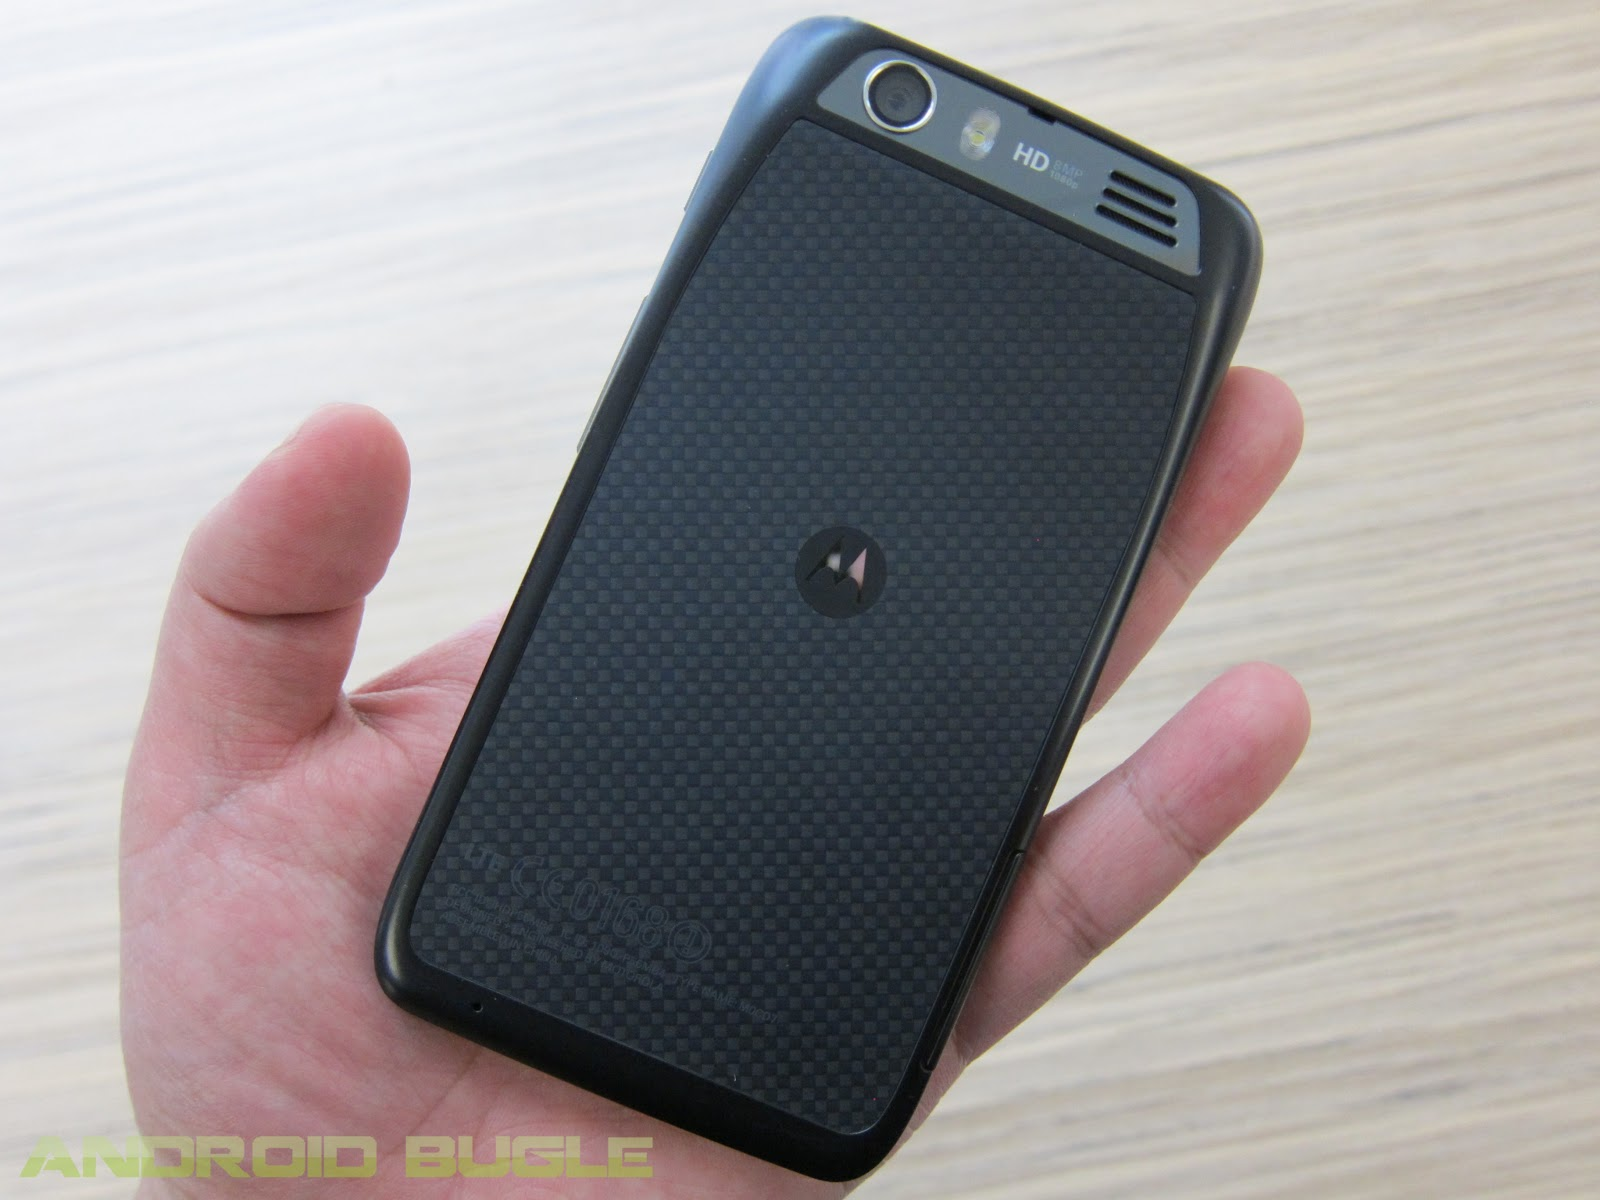 motorola atrix hd lte review android bugle Motorola Atrix HD Screen Replacement AT&T Motorola Atrix HD LTE Battery